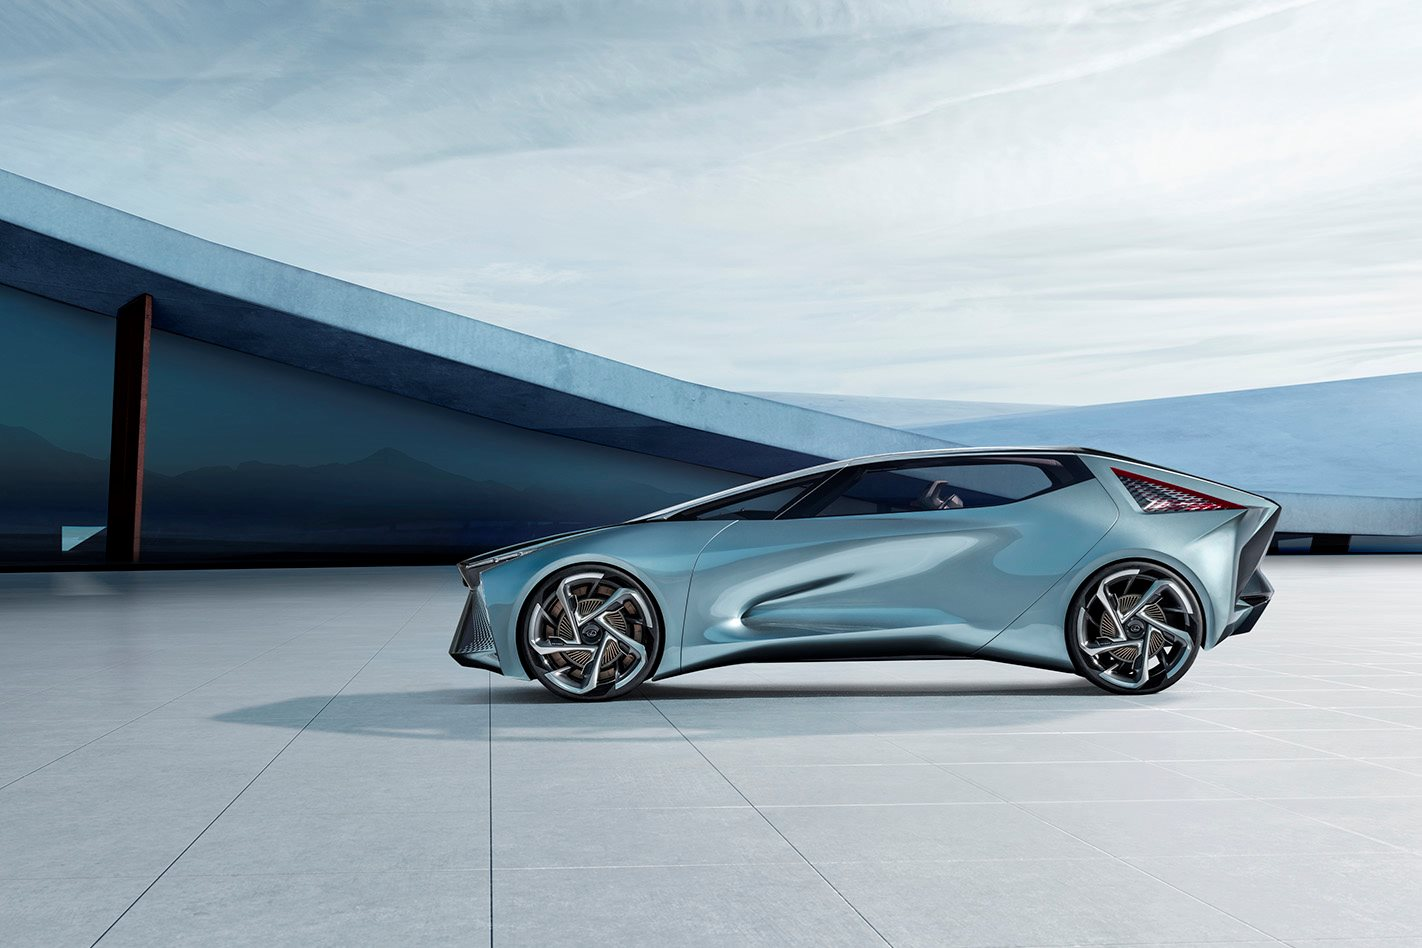 Lexus: Electric cars are a 'licence to dream'